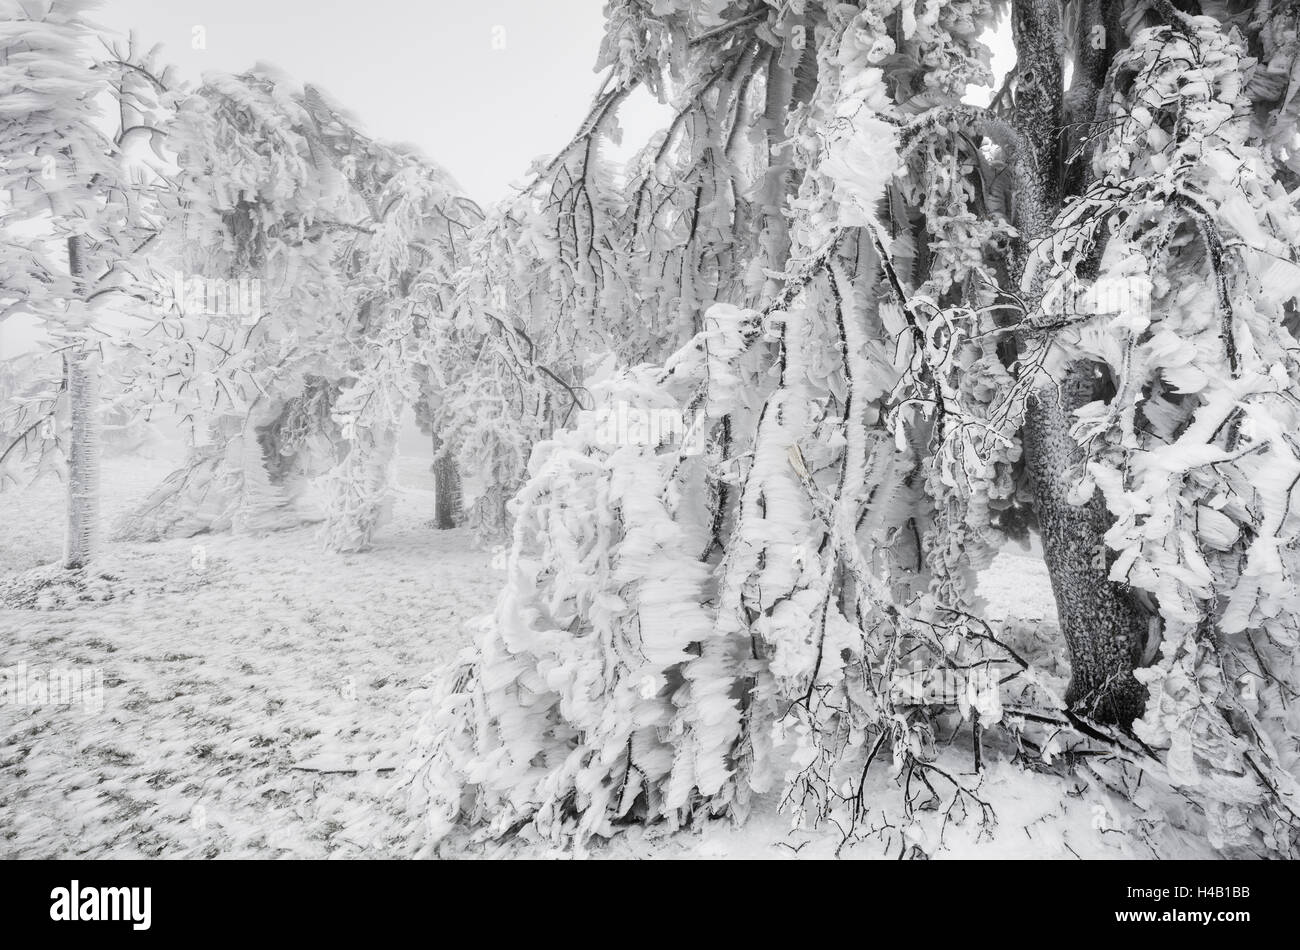 iced up weeping willows in the Wechsel region, Lower Austria, Austria - Stock Image